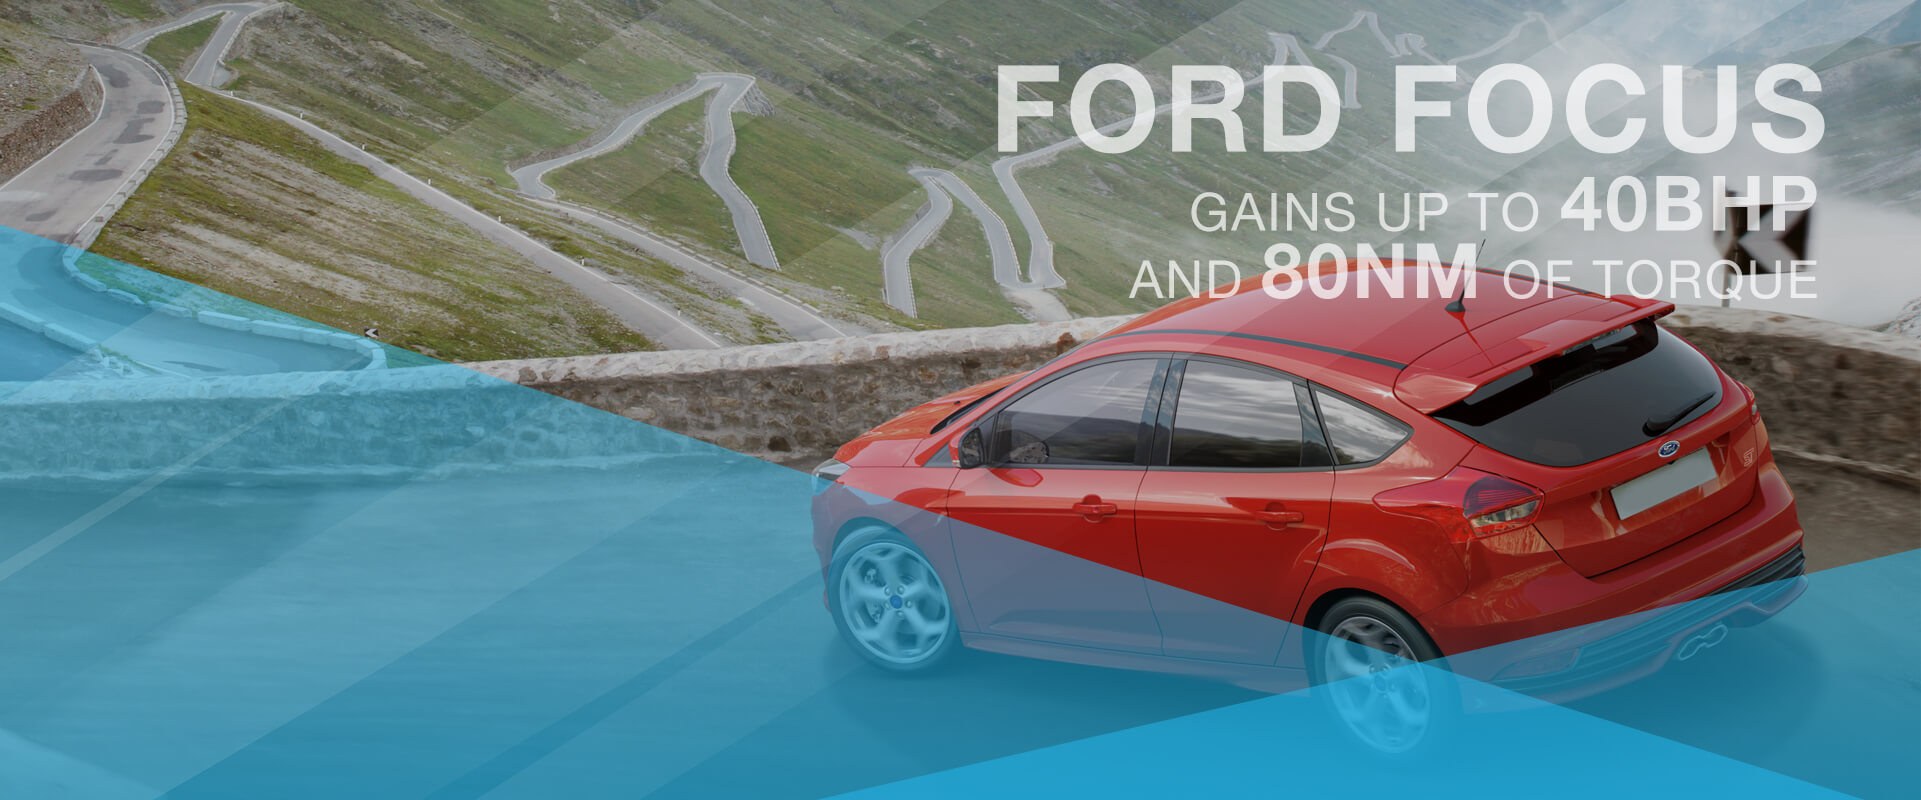 Ford Focus gains up to 40BHP and 80NM of torque